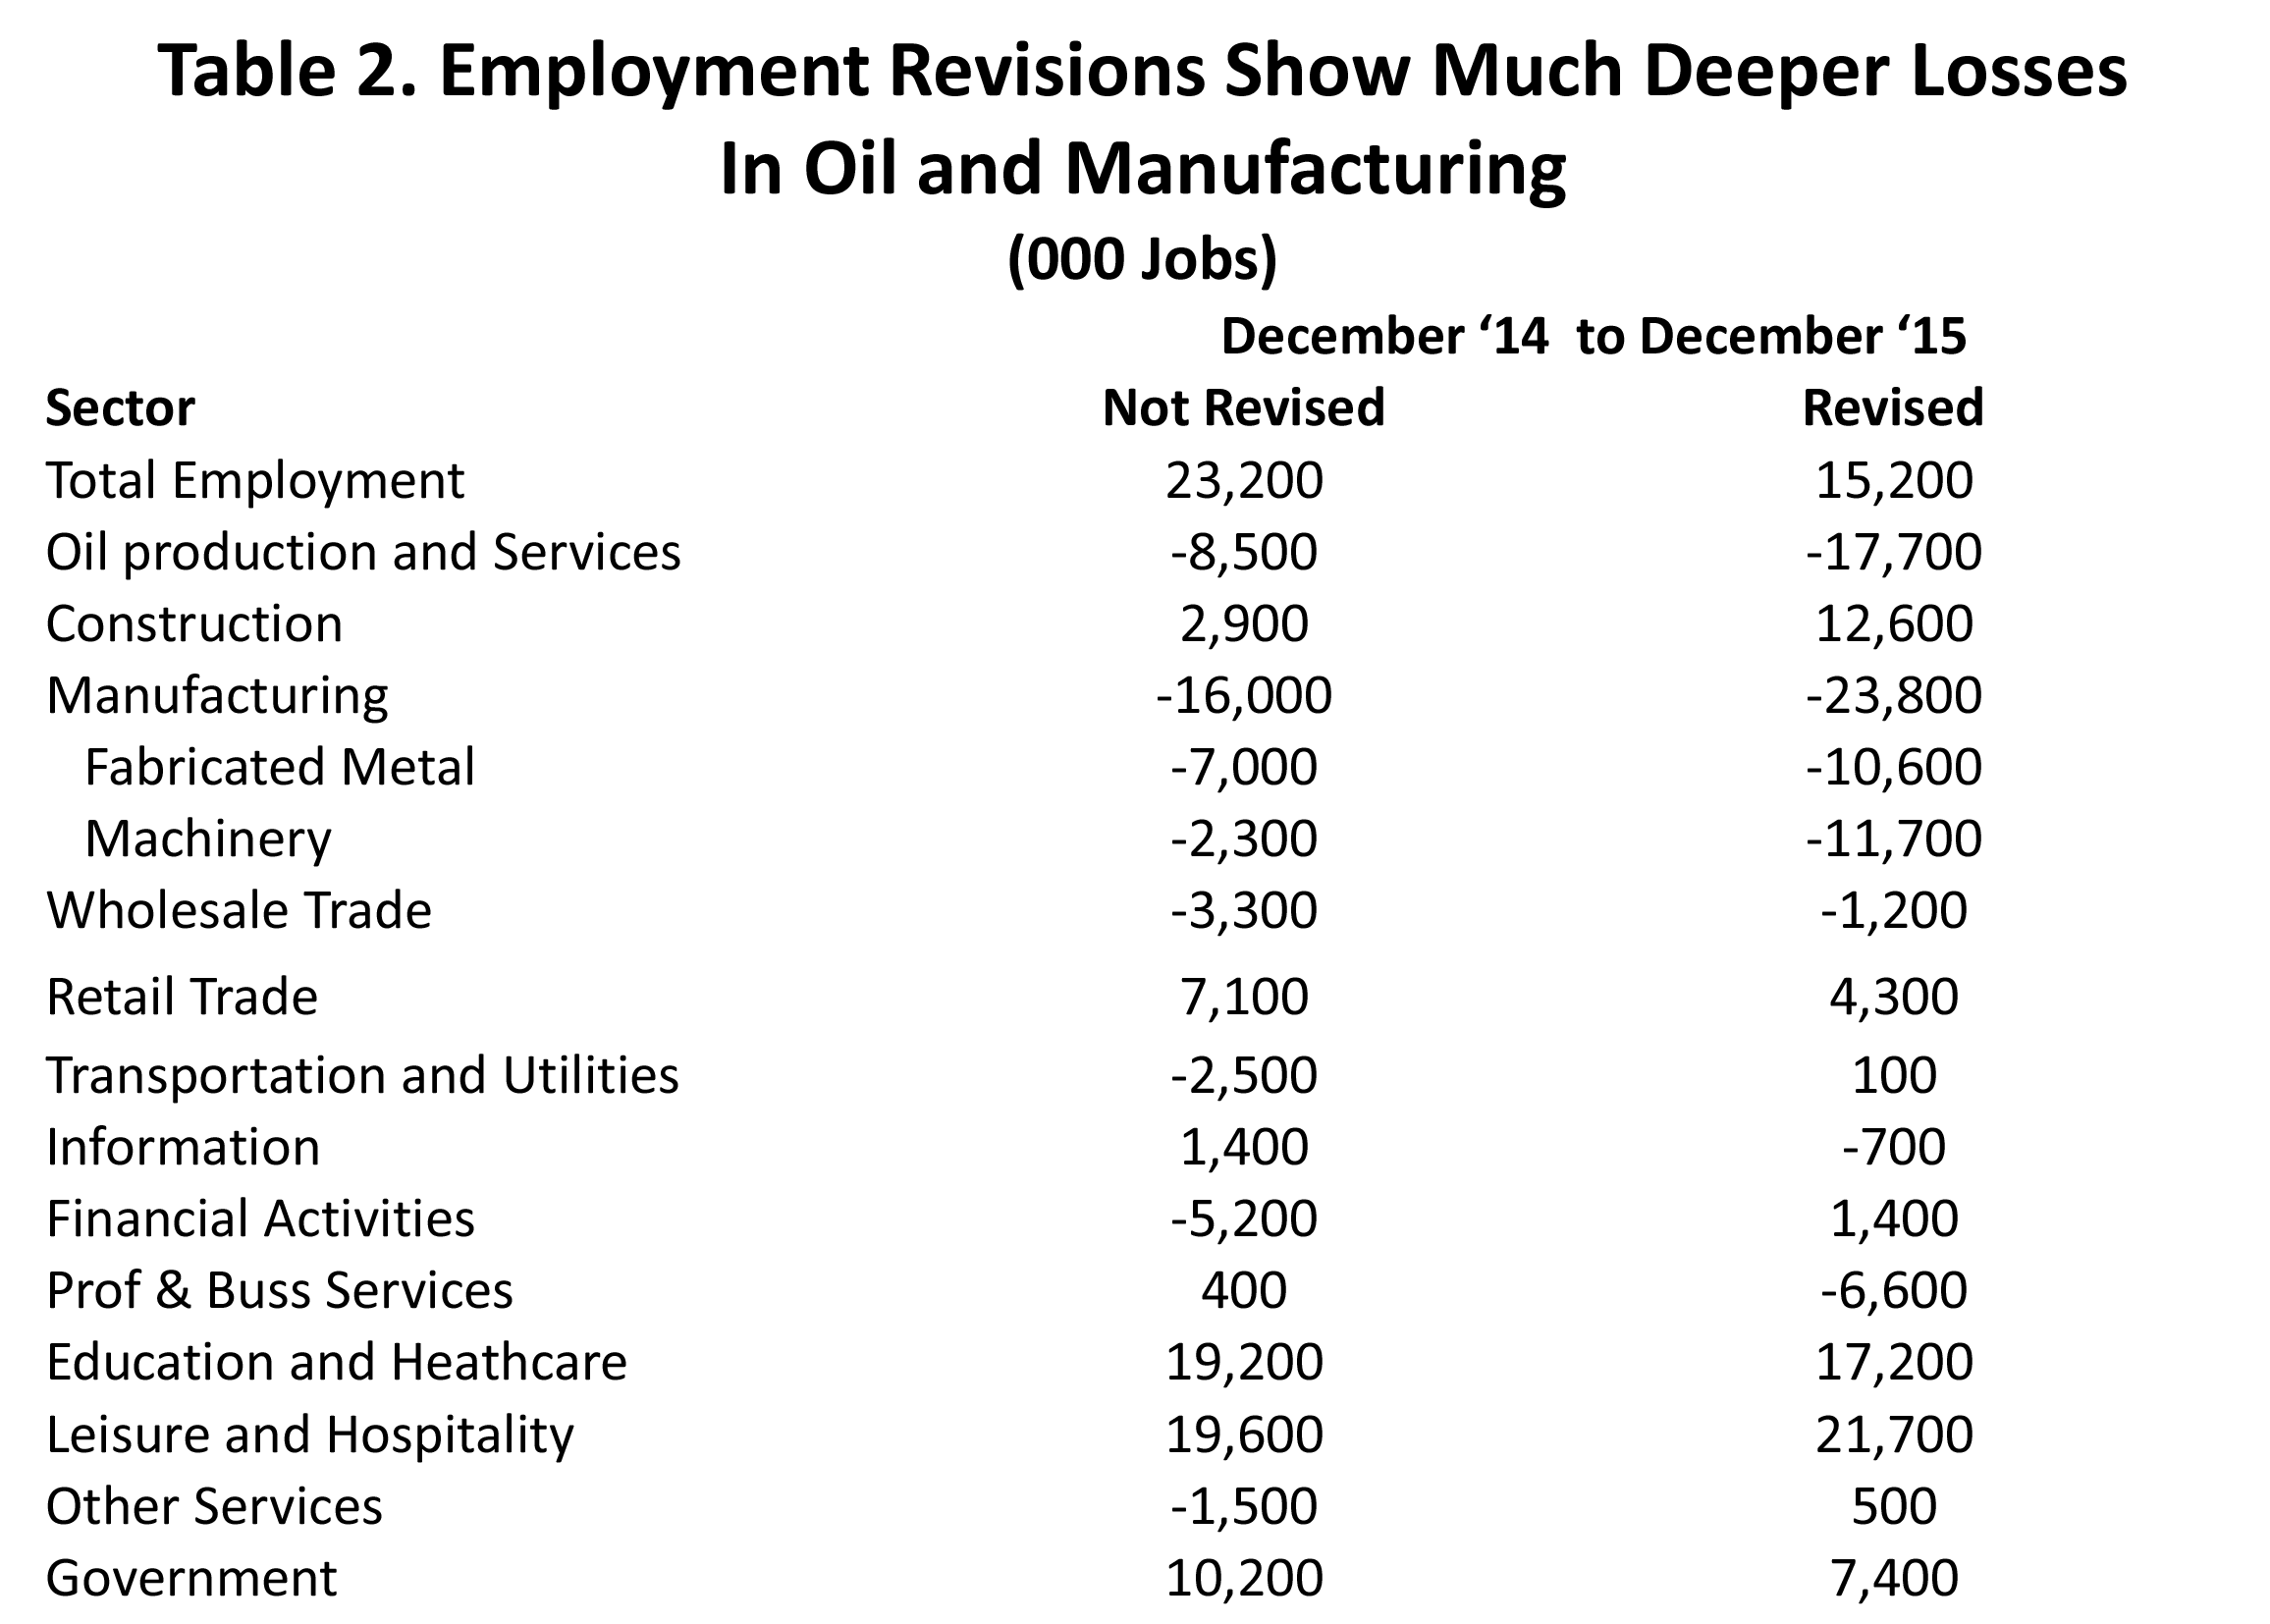 Table 2. Employment Revisions Show Much Deeper Losses in Oil and Manufacturing